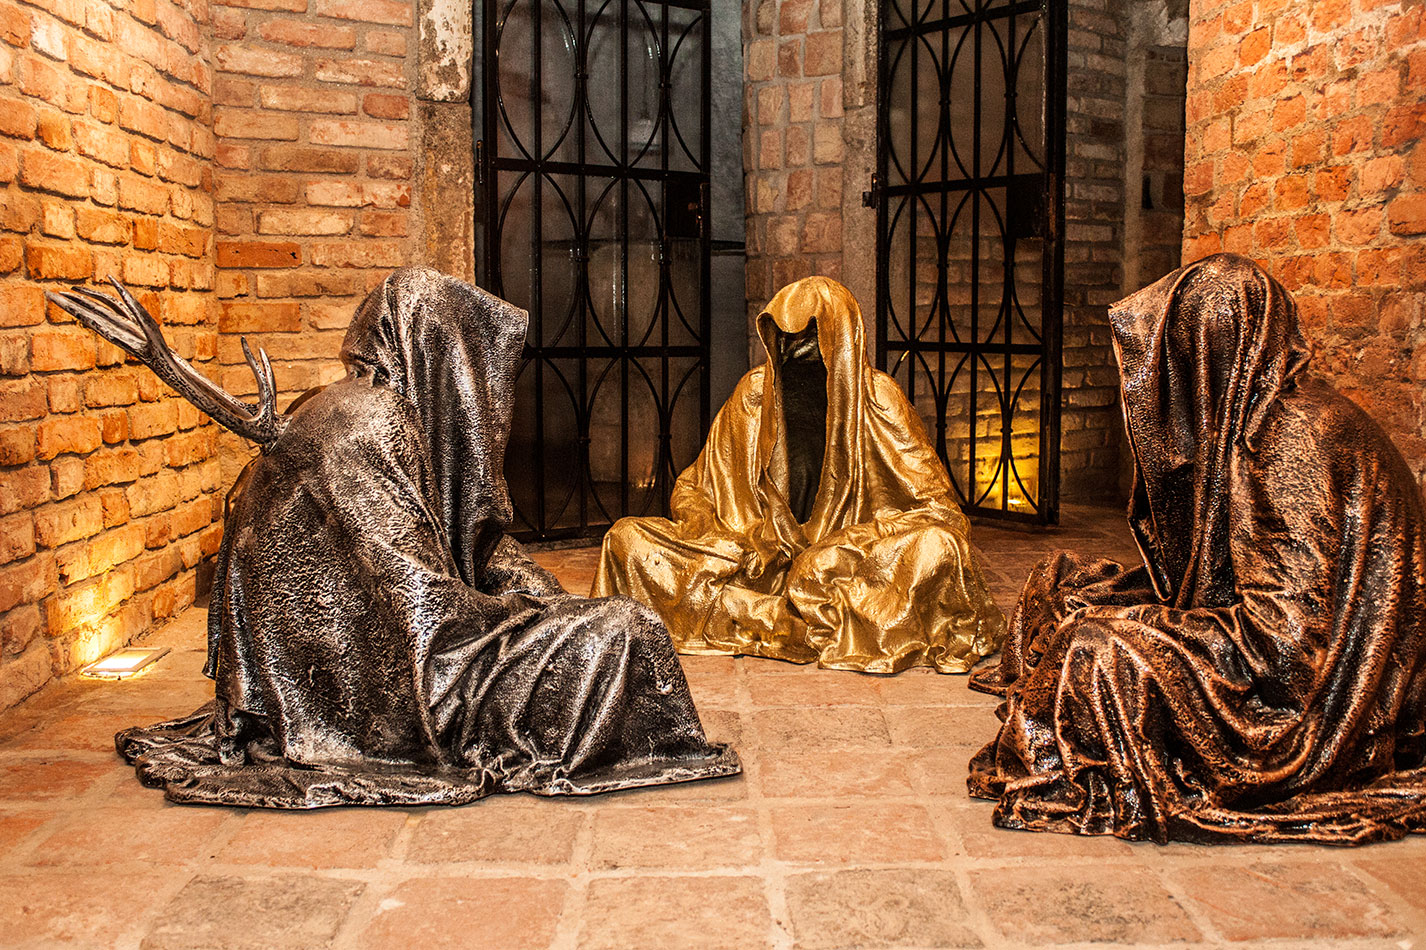 guardians-of-time-sculptor-manfred-kielnhofer-contemporary-modern-fine-arts-antique-sculpture-sttue-art-design-2542